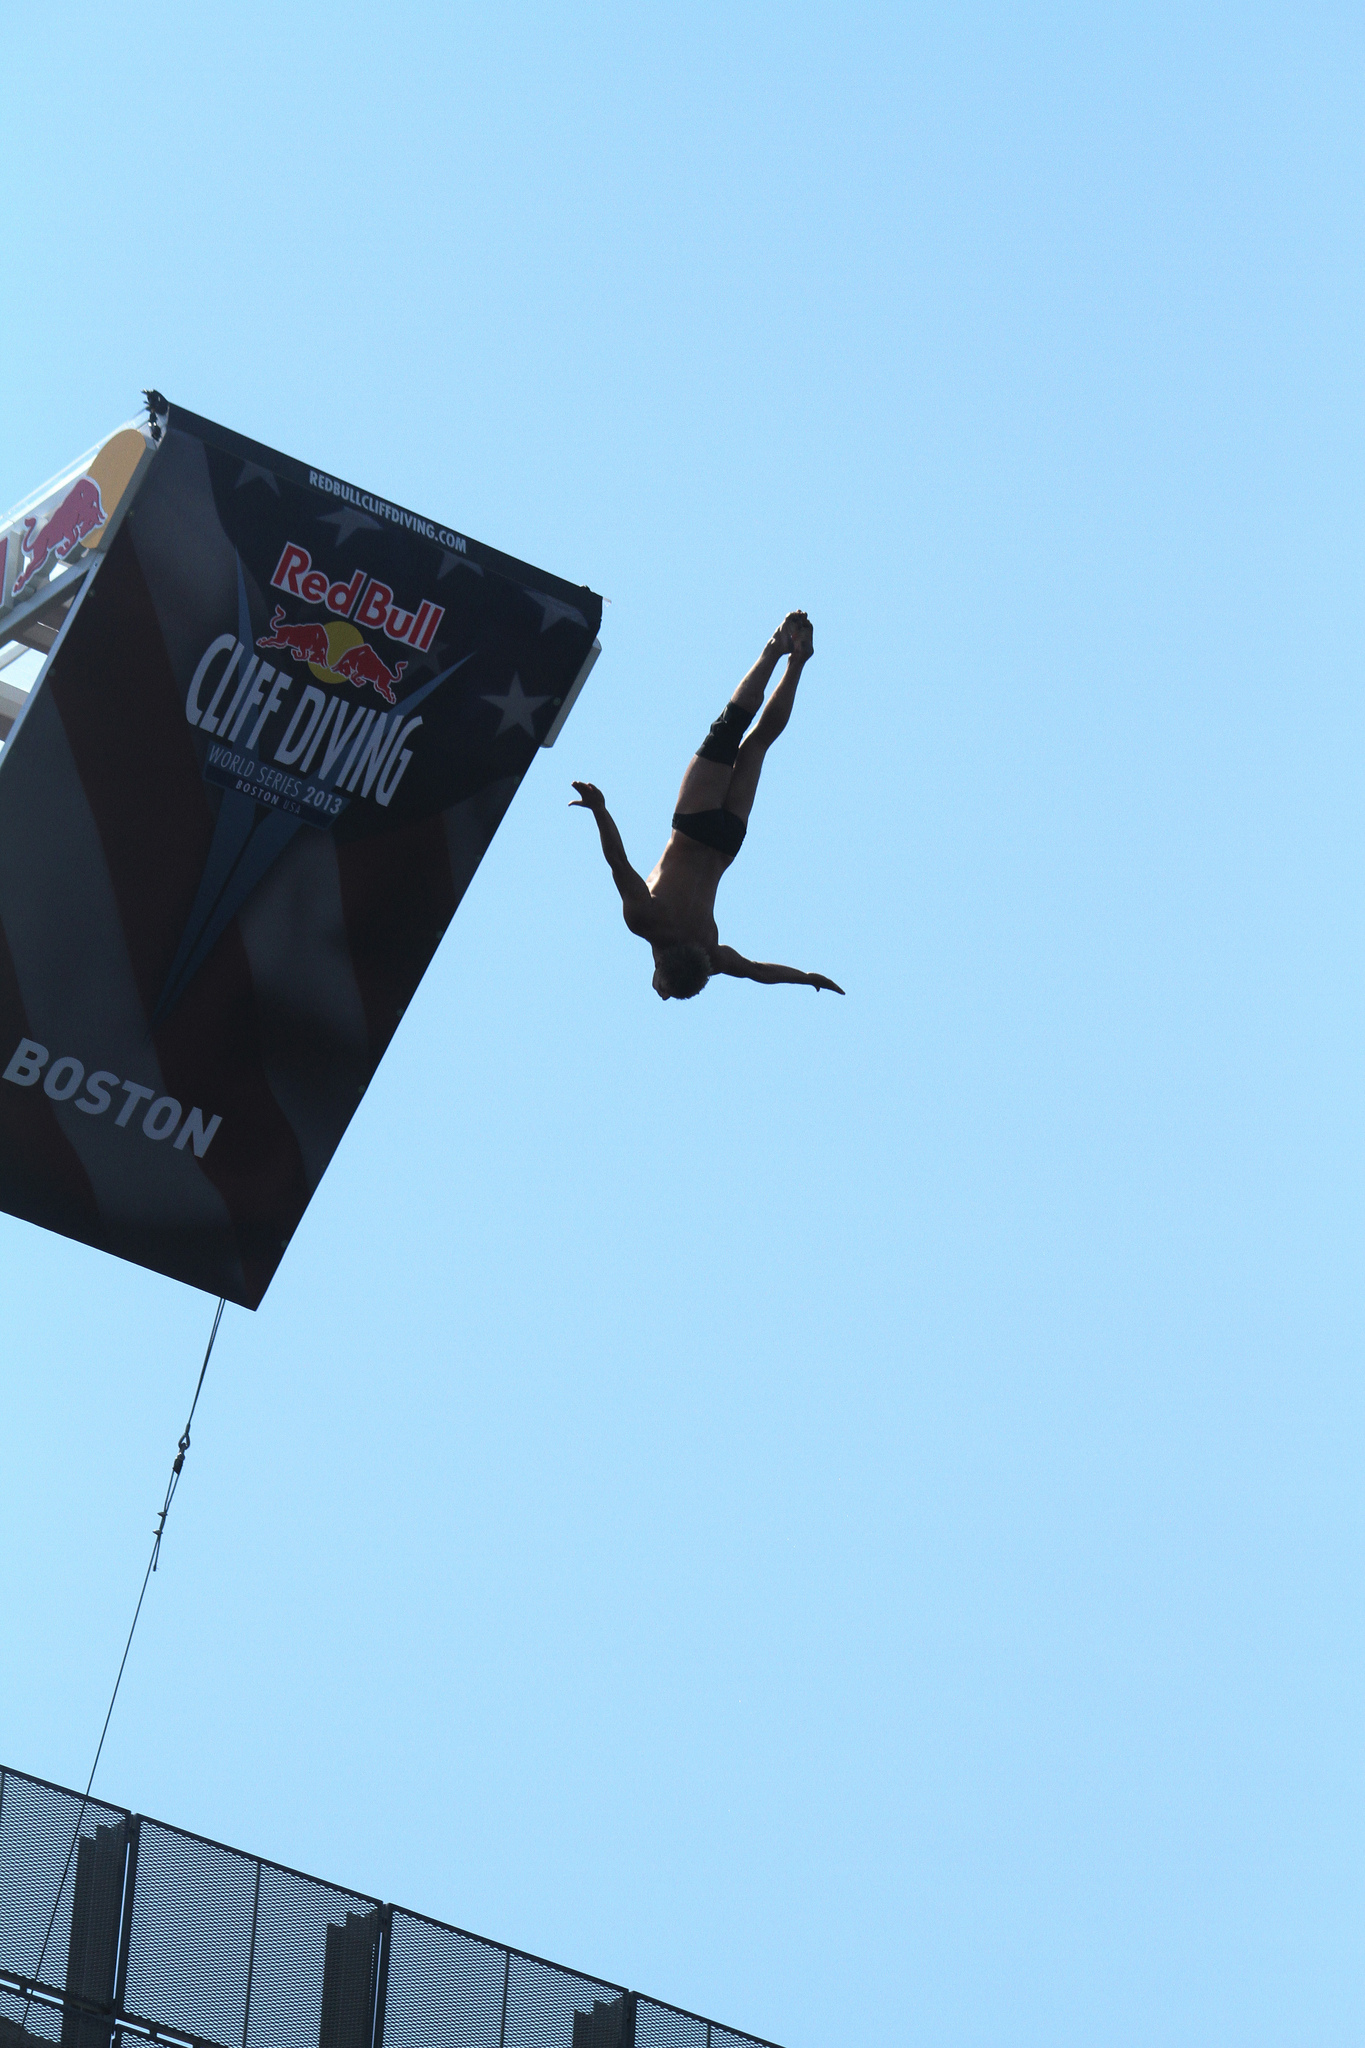 Red Bull Cliff Diving World Series Boston 2013 von digboston CC-BY-2.0